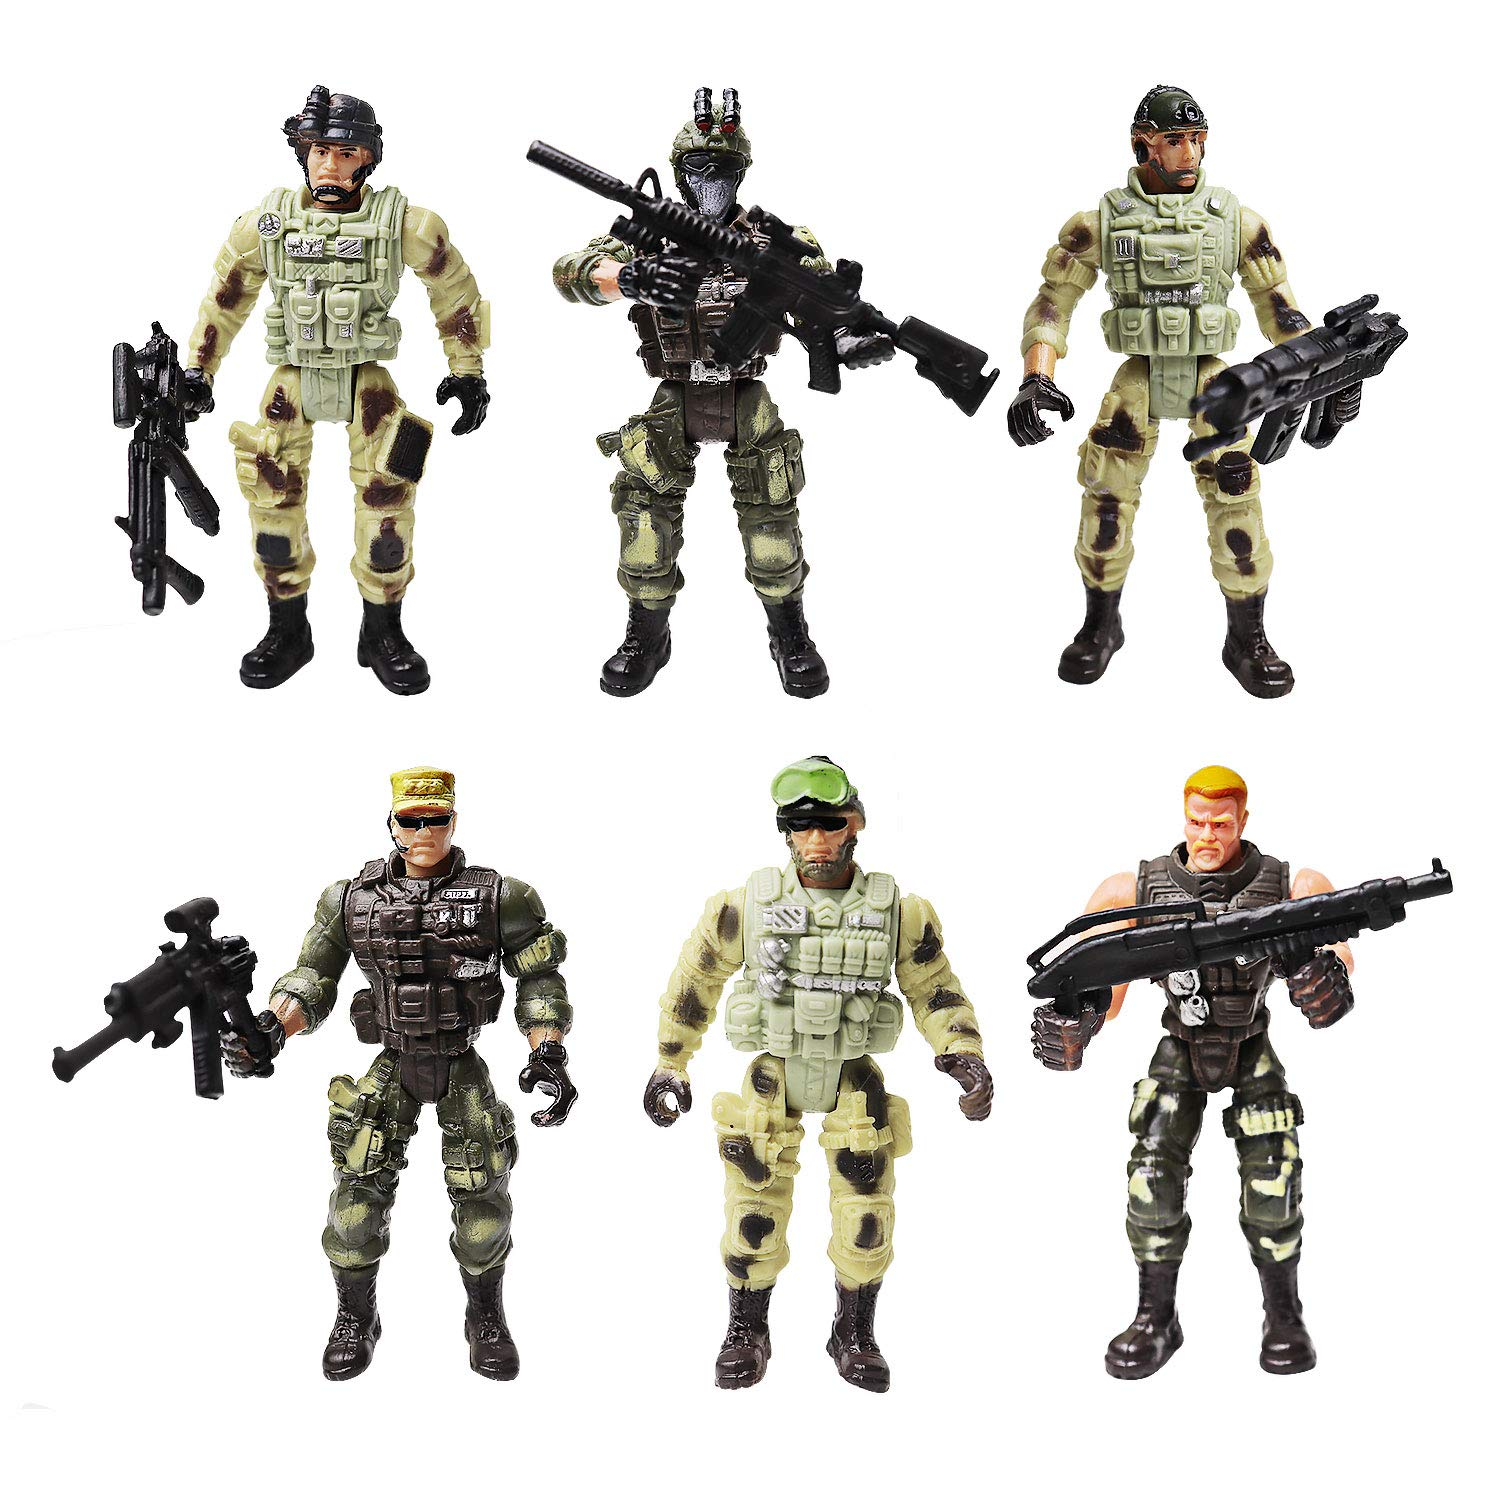 Army Men Action Figures Soldiers Toys with Weapon Accessories / SWAT Team Figure Military Playset for Boys Girls Children Kids 3 4 5 6 7 8 9 Years Old,Great as Christmas,Birthday(Special Troops)